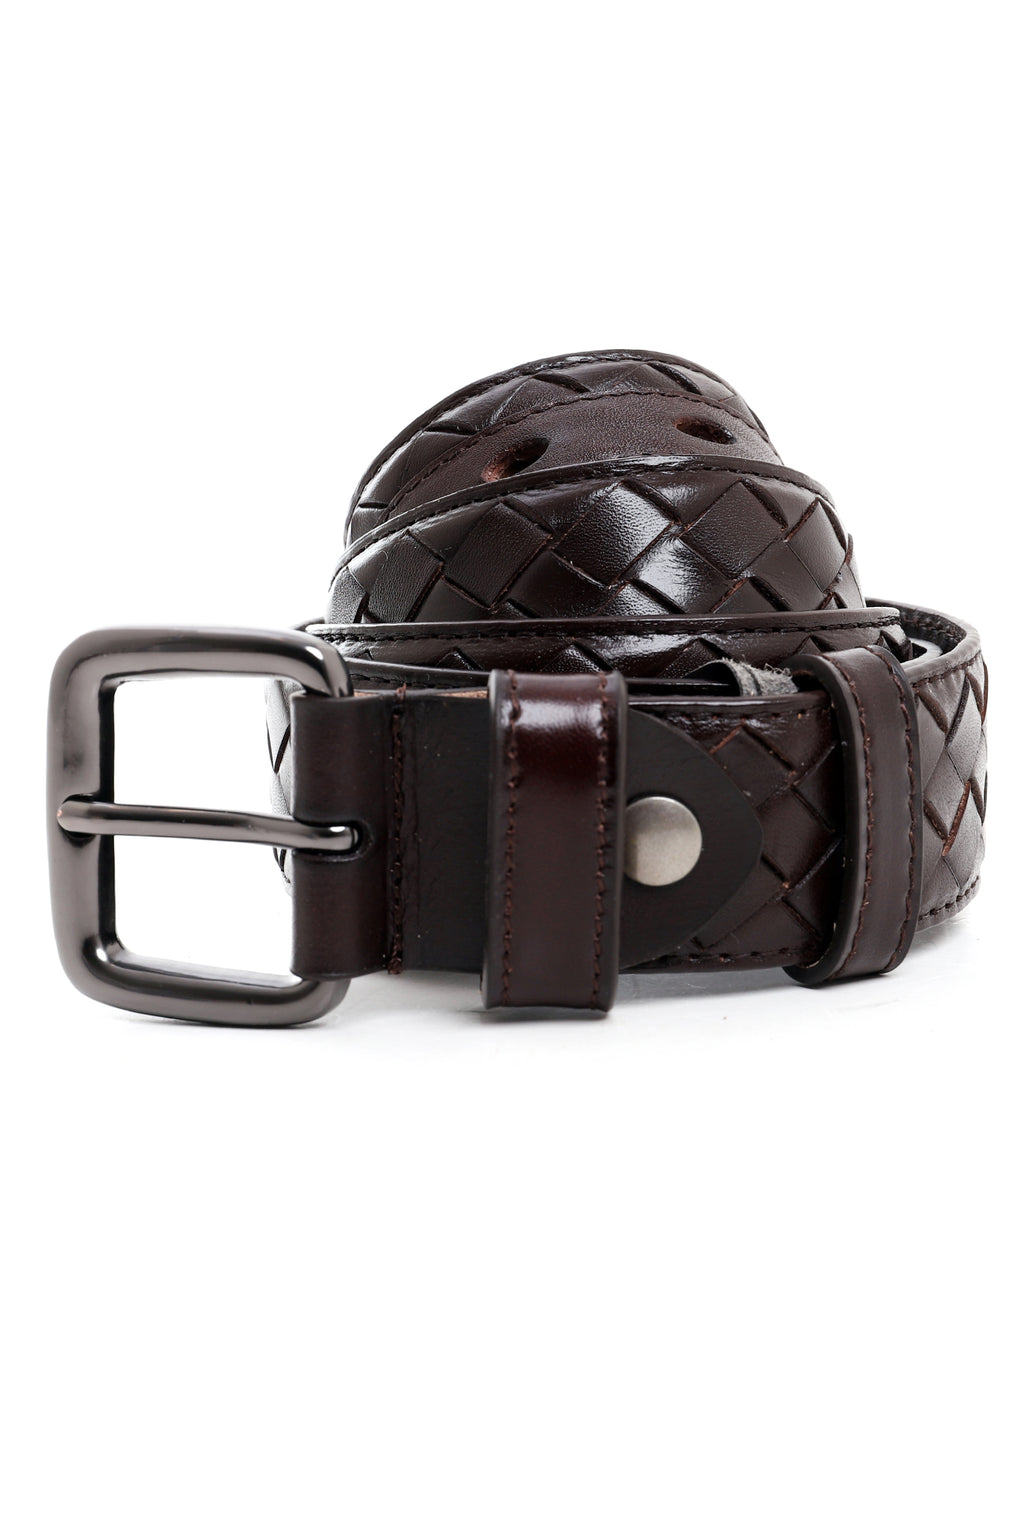 LEATHER WEAVE BELT-COFFEE